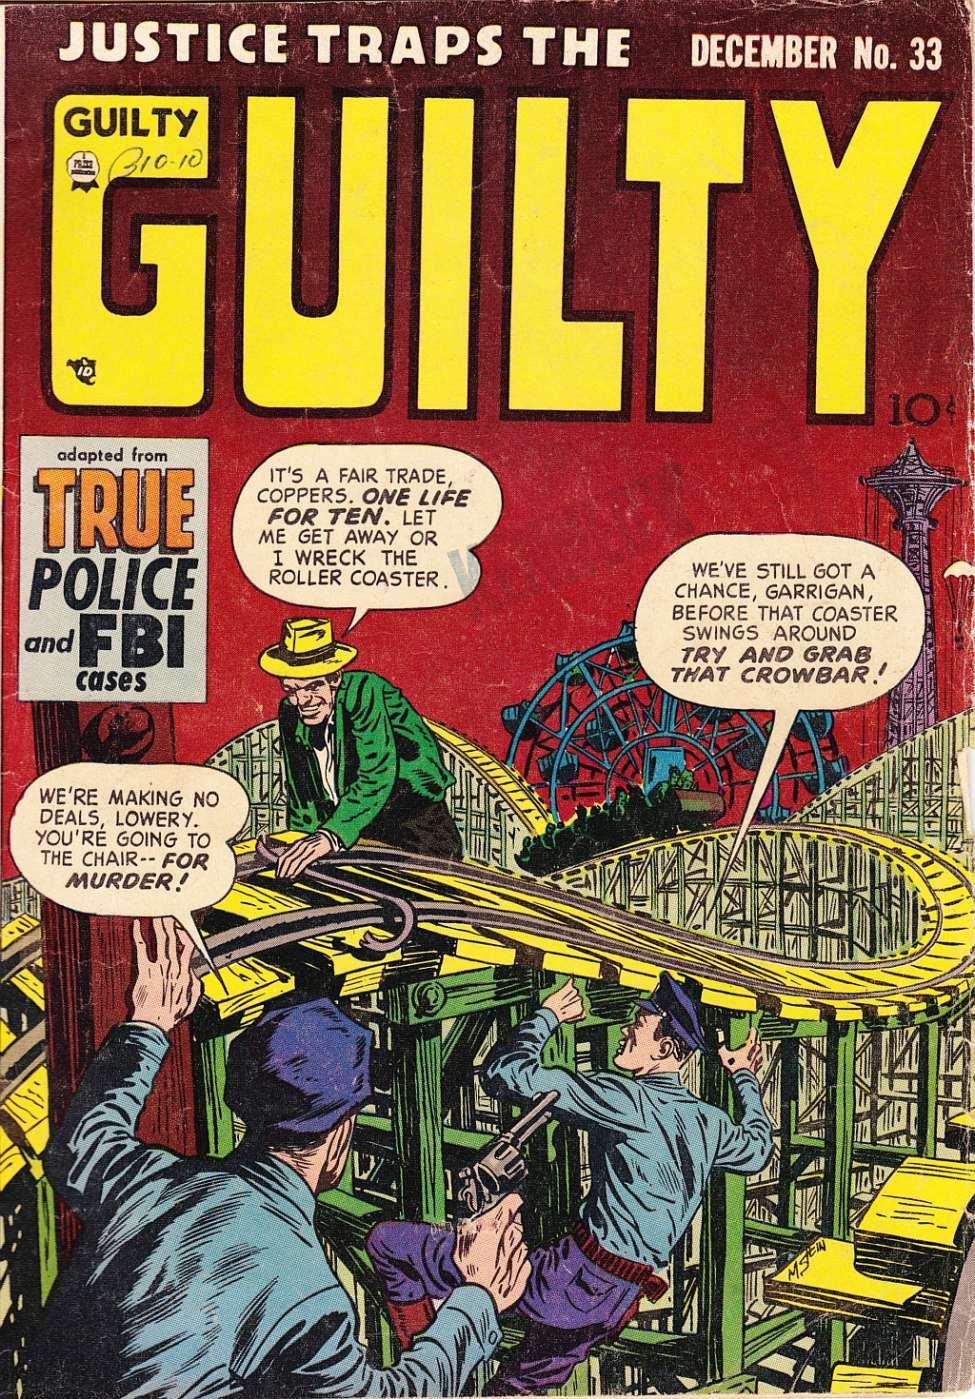 Comic Book Cover For Justice Traps the Guilty v5 3 (33)